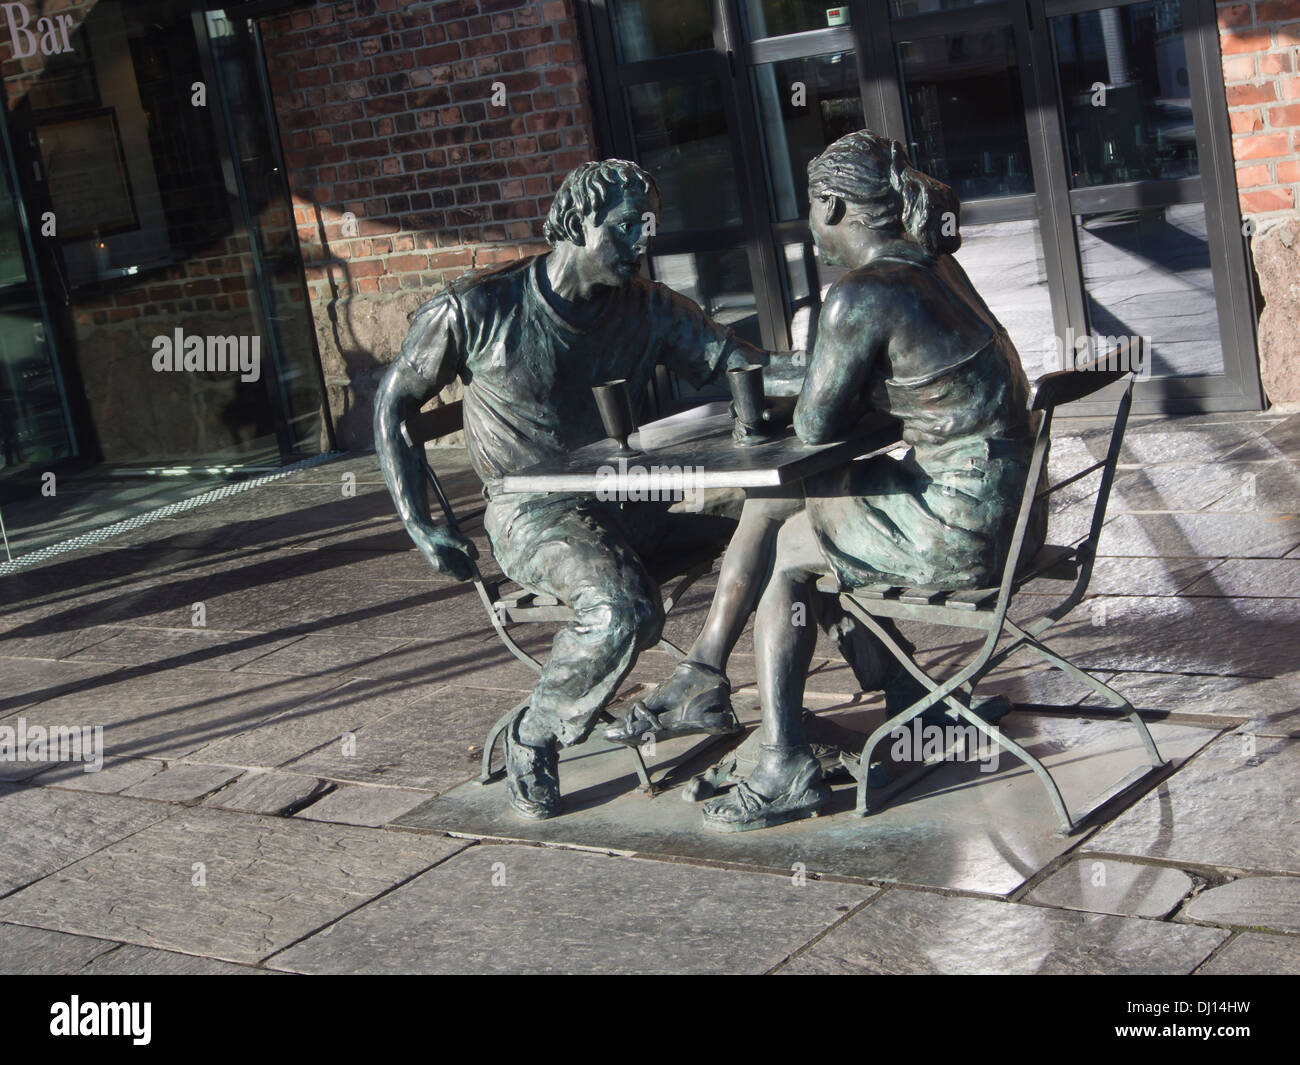 Sculpture of a young couple enjoying refreshments at an outdoor restaurant in Aker Brygge Oslo Norway, sculptor Per Ung - Stock Image